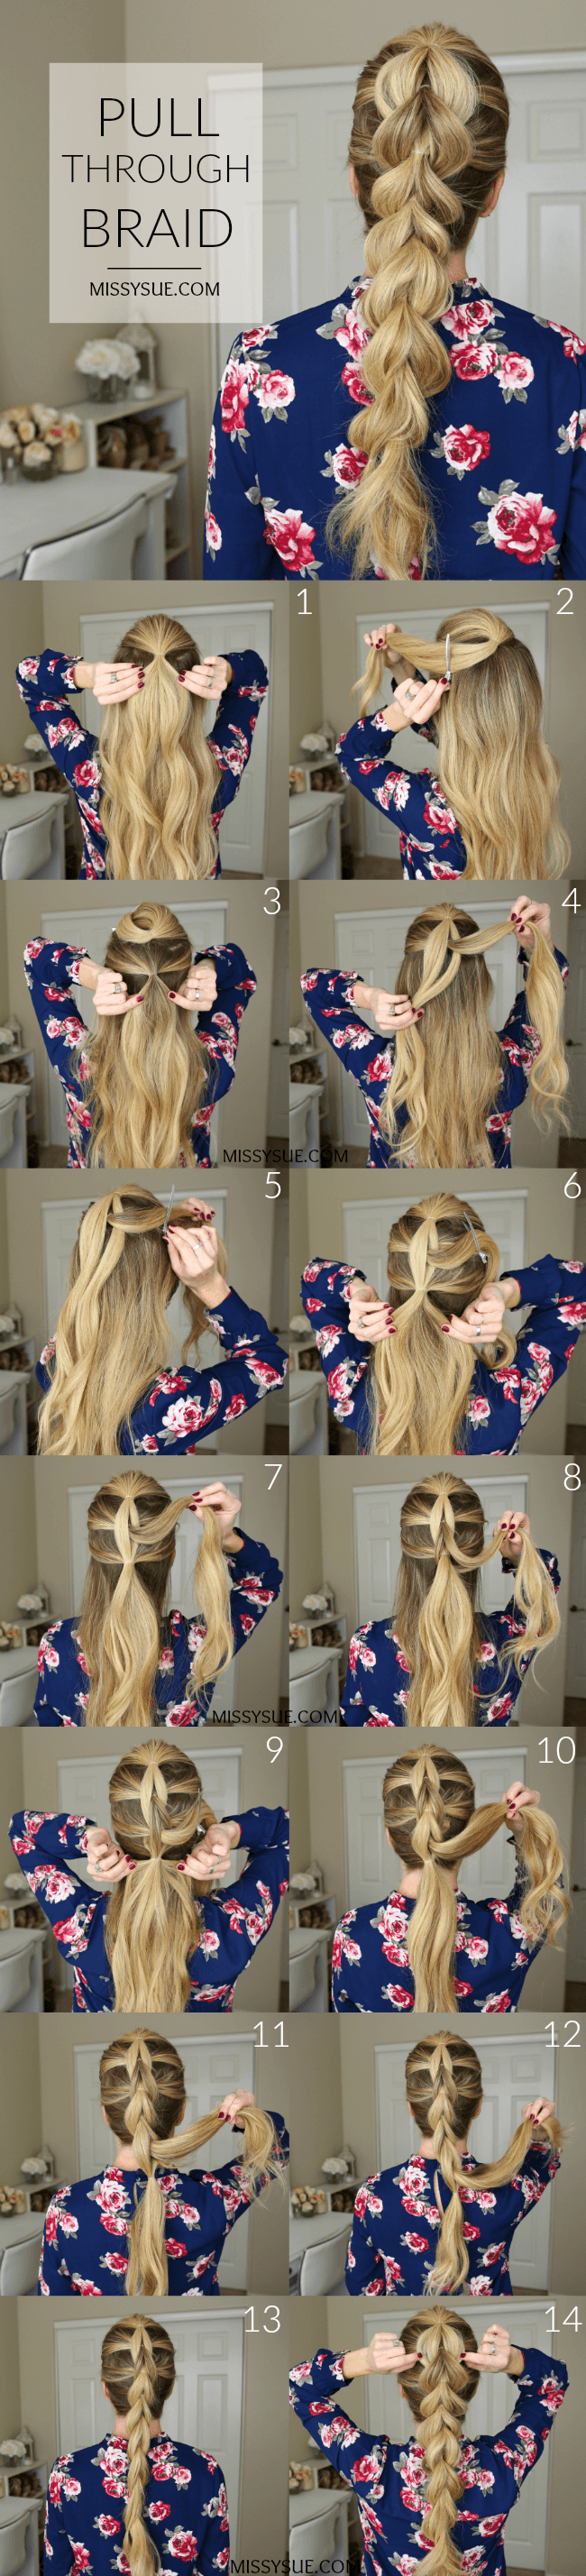 pull-through-braid-hair-tutorial